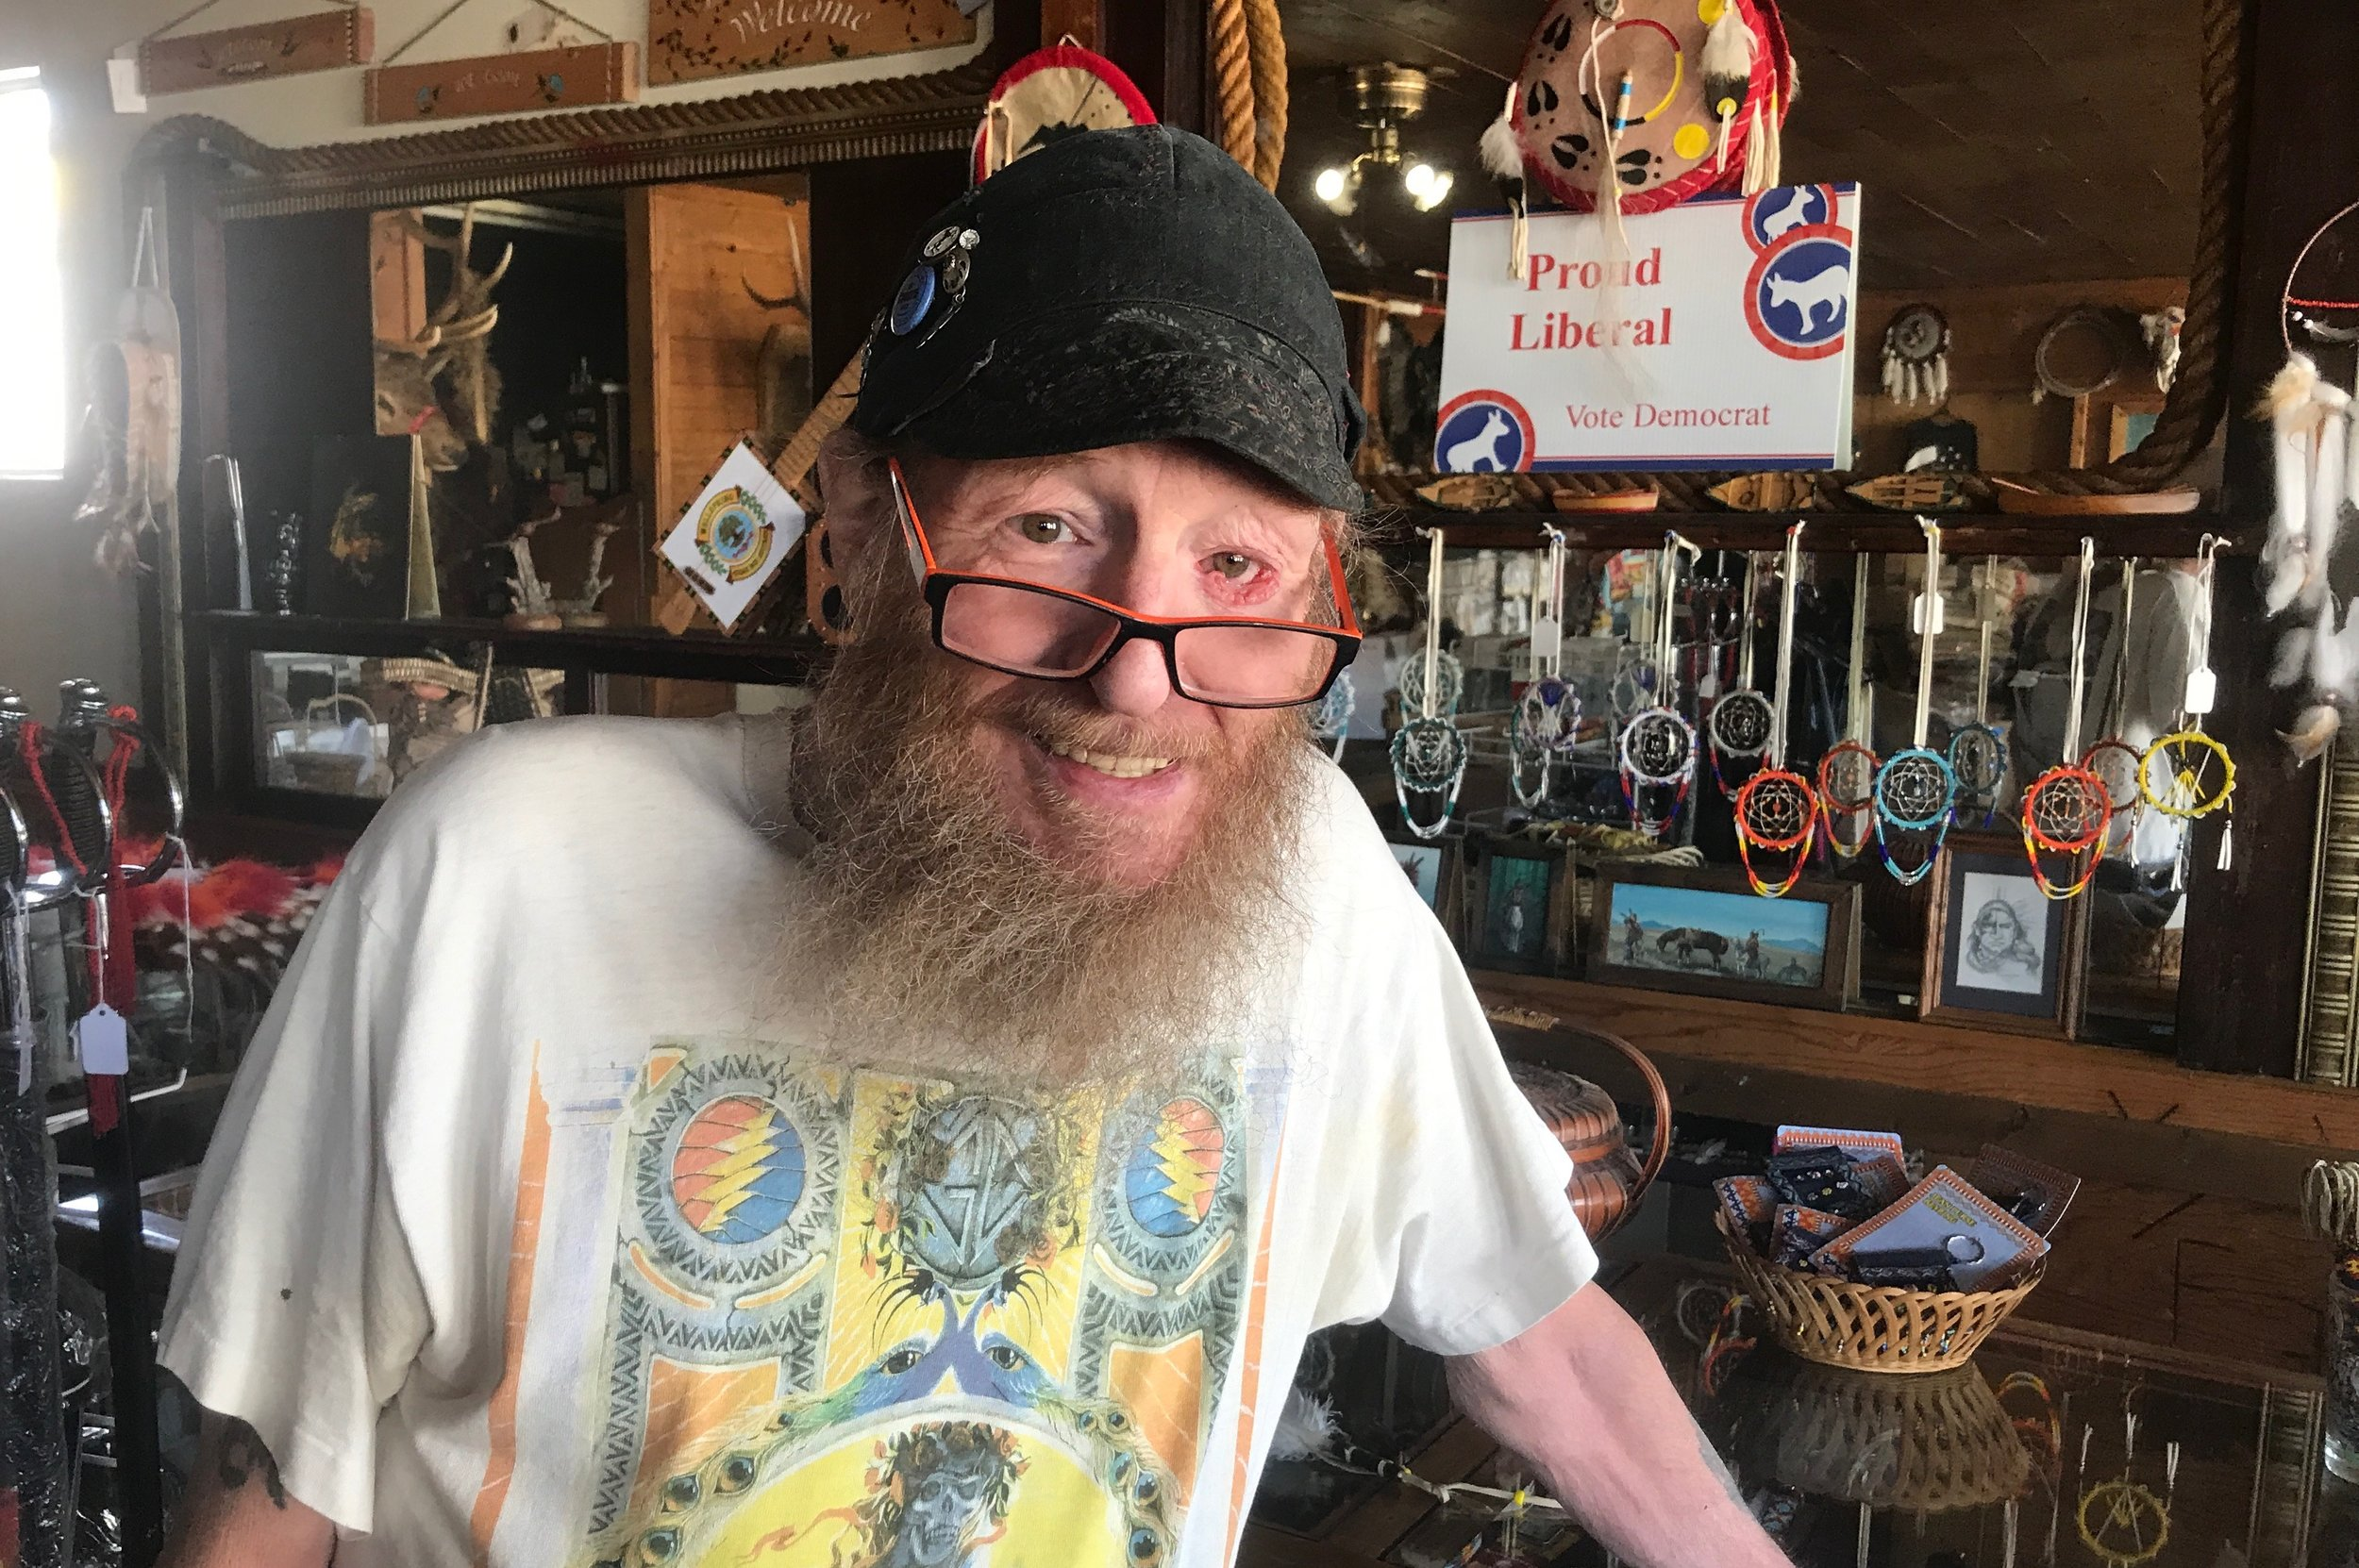 """Tom Walls, proud liberal, at his store in Hot Springs. He told me about where the locals eat, the best place for a genuine Hot Springs """"soak,"""" and how he's kicked rich Republicans out of his store for being so wrong."""